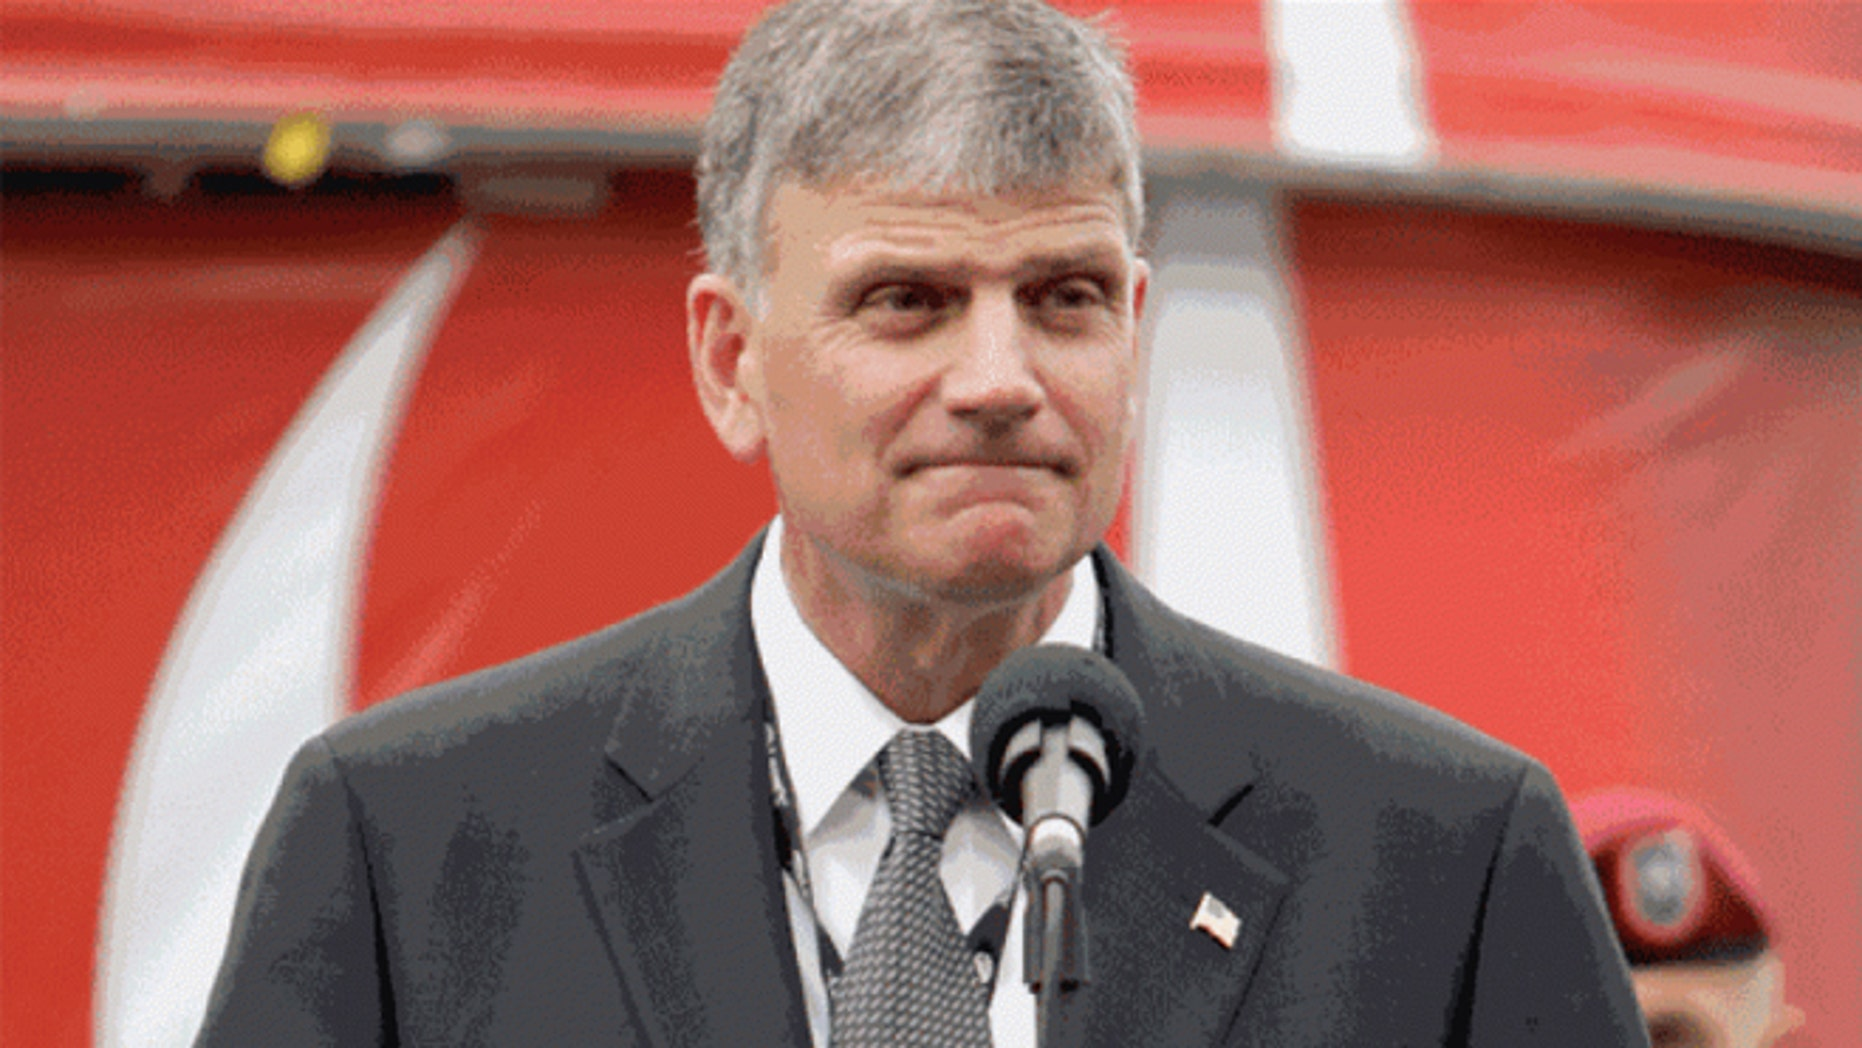 May 24, 2009: Franklin Graham prepares to give the invocation before the NASCAR Coca-Cola 600 auto race at Lowe's Motor Speedway in Concord, N.C. (AP)